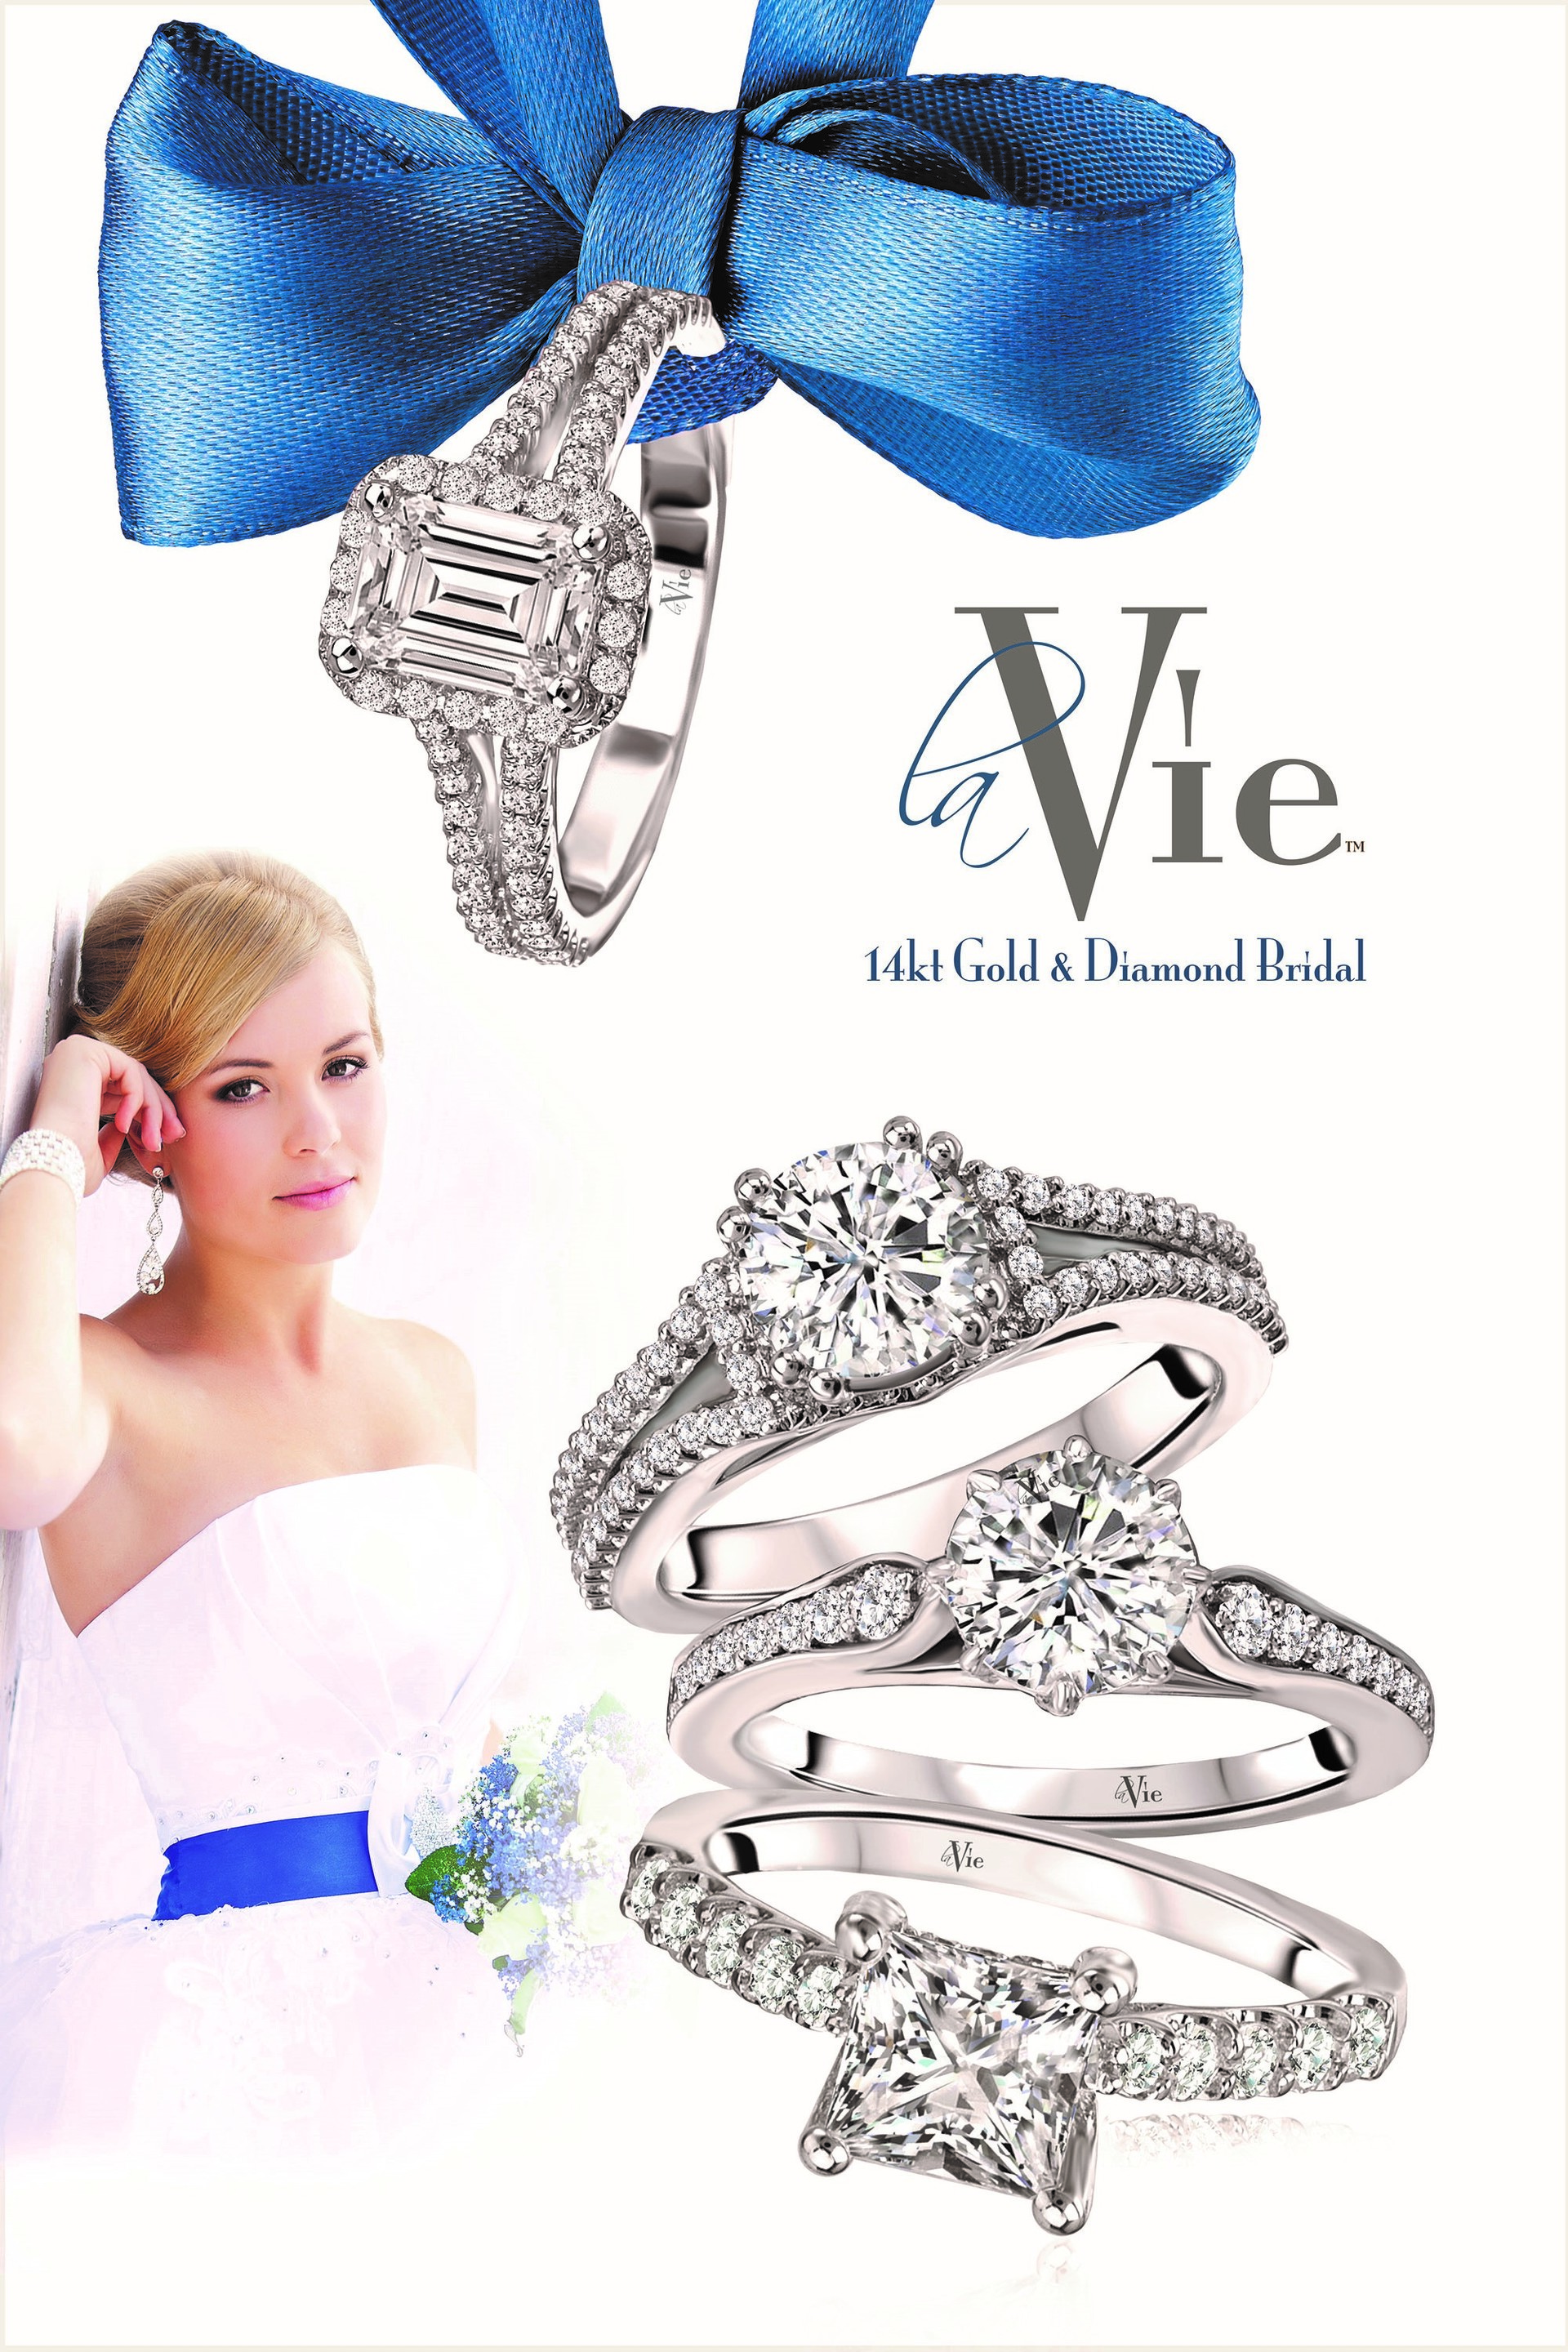 LaVie - Jewelry